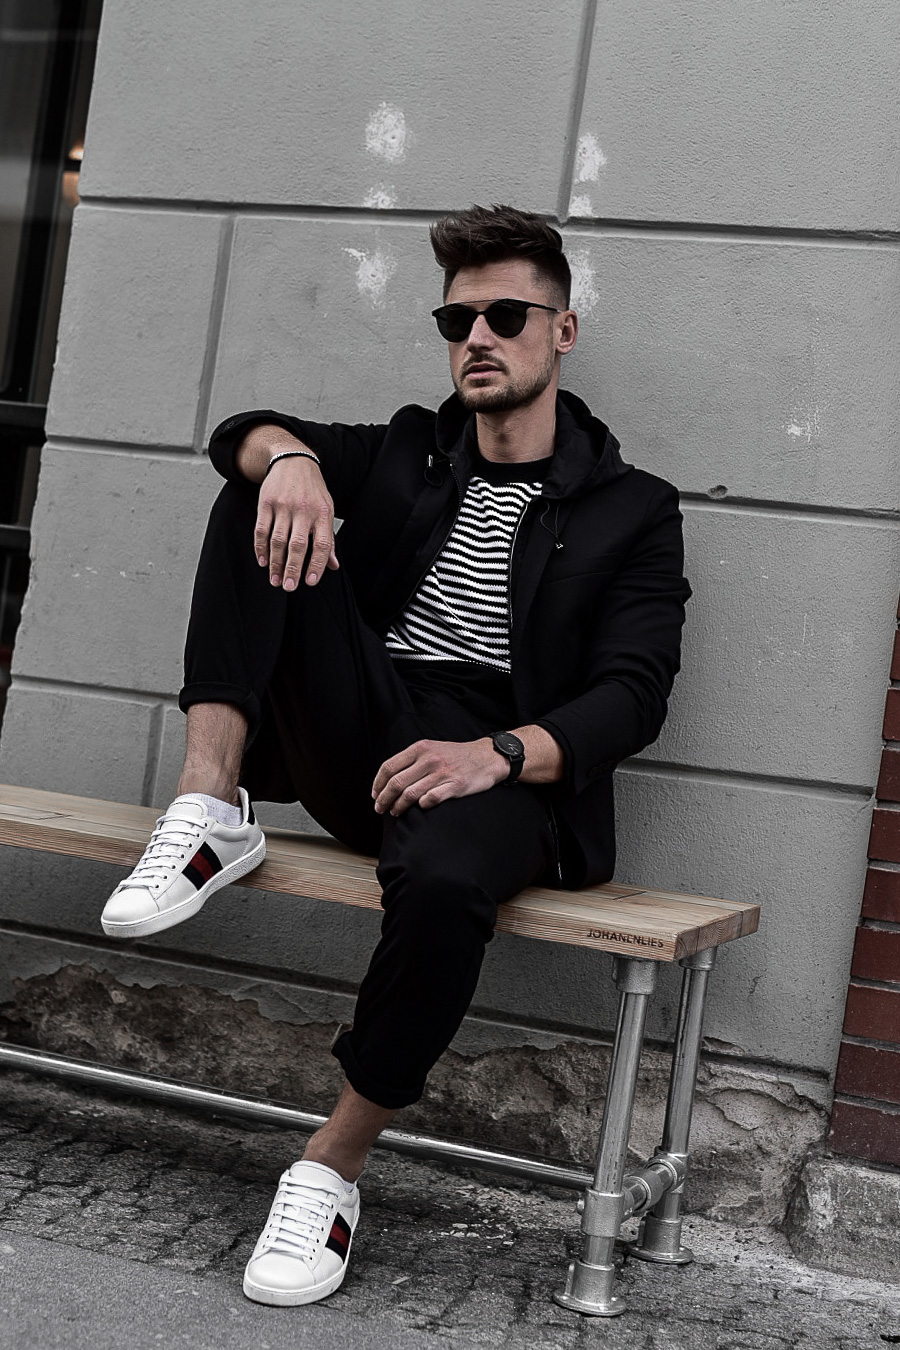 Tommeezjerry-Maennermodeblog-Maennermode-Fashionblog-Styleblog-Berlinblog-soliver-the-fusion-collection-casual-streetstyle-jogger-suit